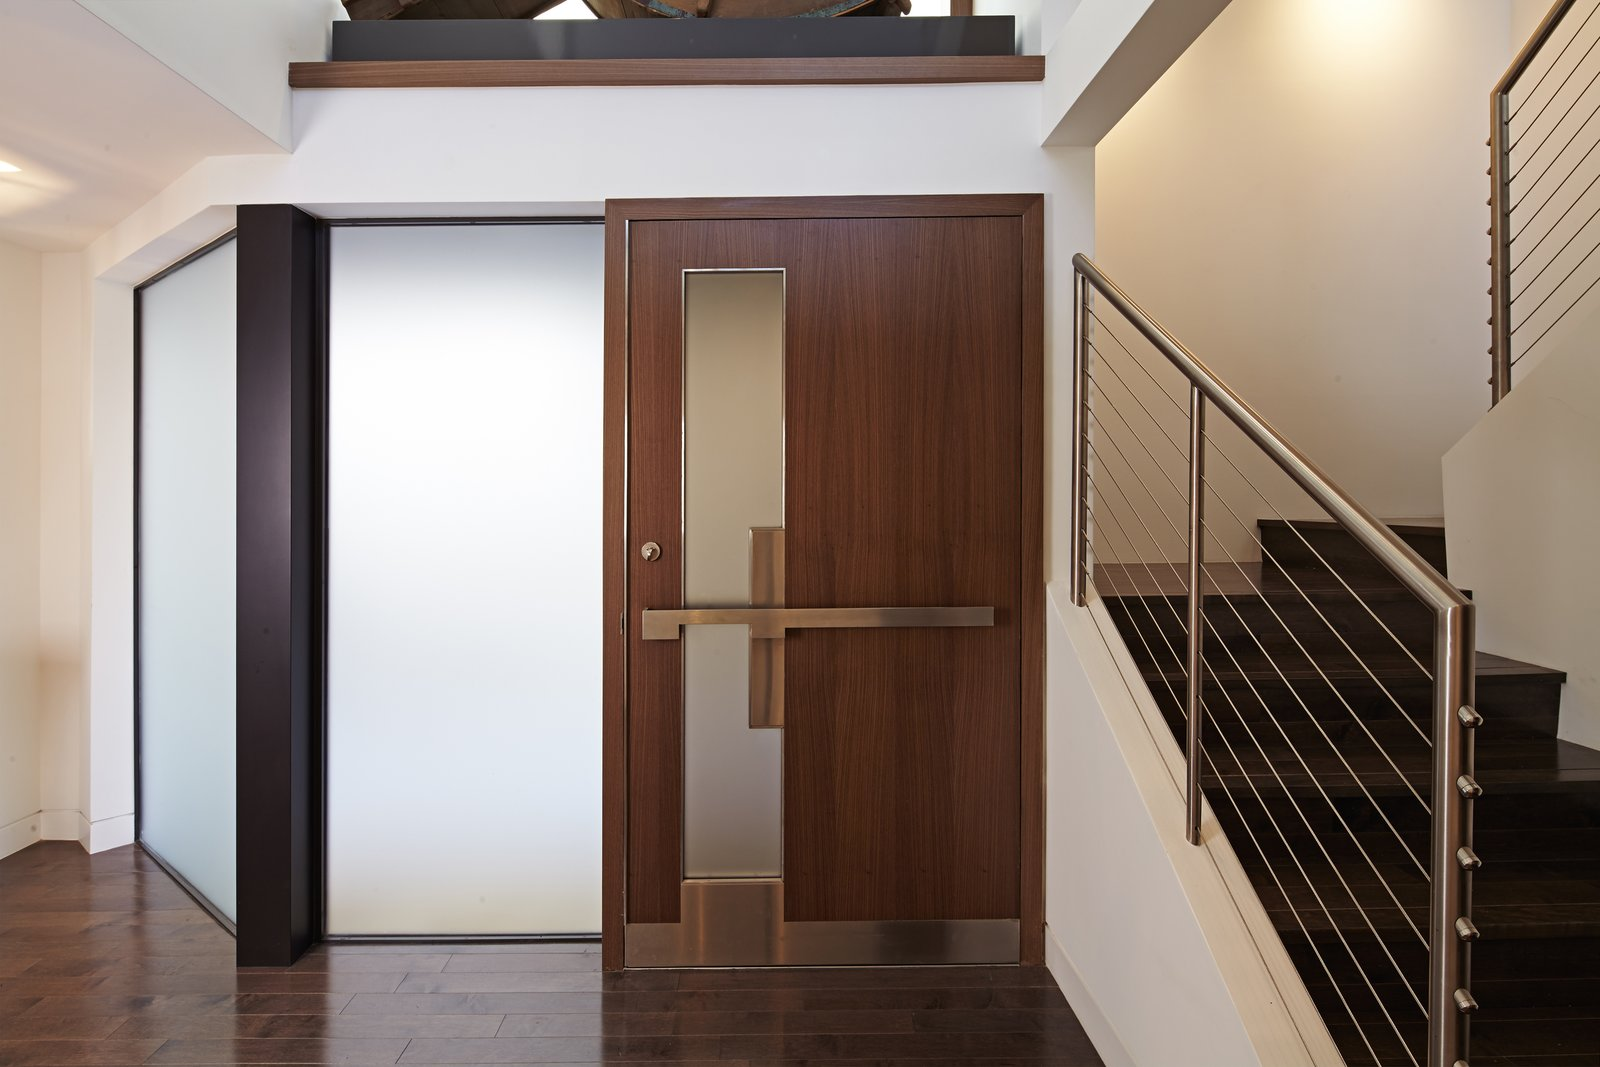 The public entry sequence pulls you through the front garden, leading to the main entry which sits on the side of the home.  A custom designed walnut and stainless steel door opens into a two-story foyer.   Perrin Residence by Abramson Teiger Architects